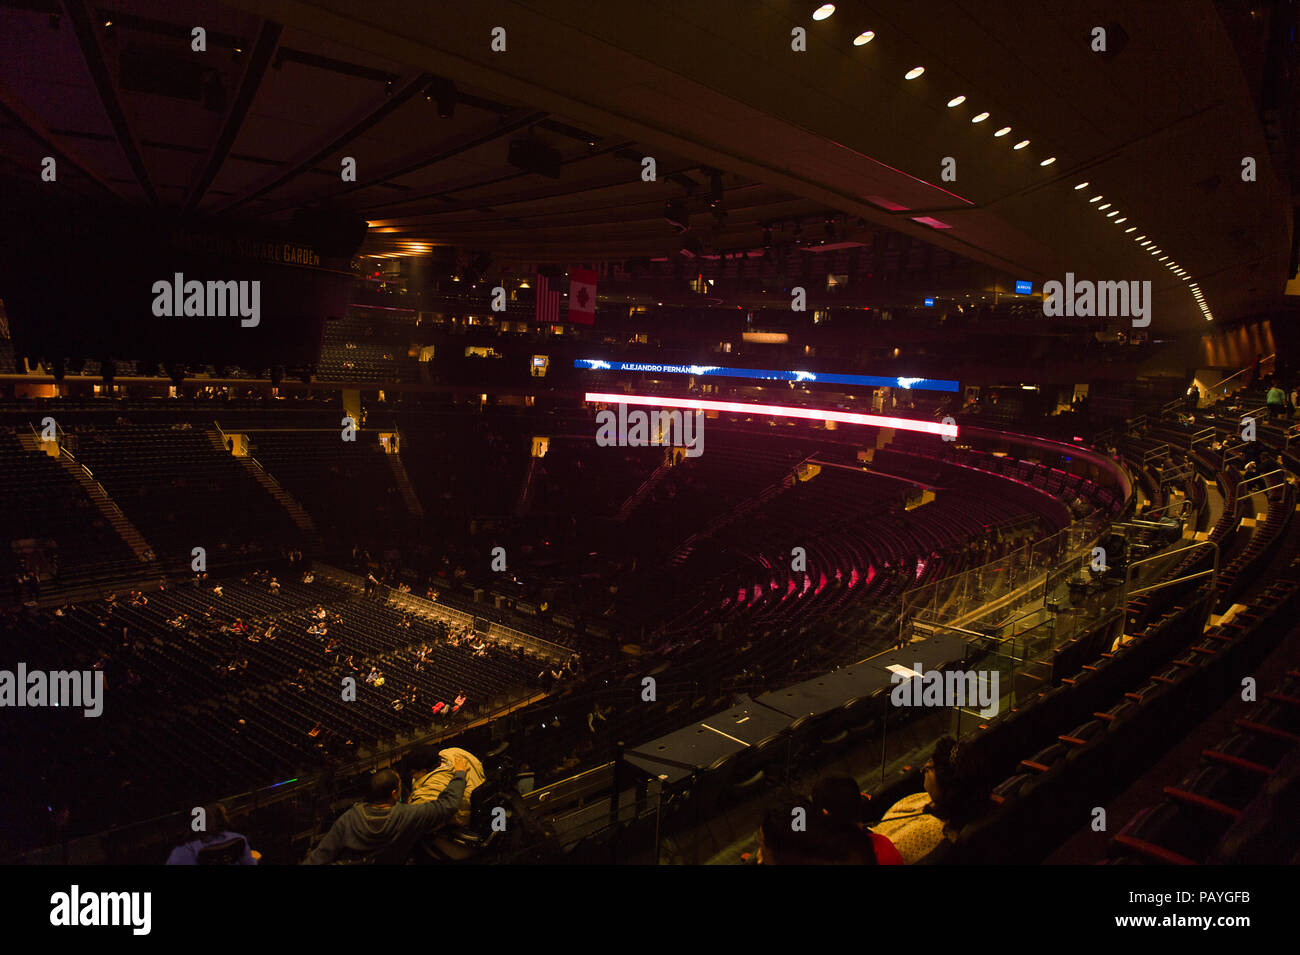 NEW YORK, USA   OCT 8, 2015: Madison Square Garden, New York City. MSG Is  The Arena For Basketball, Ice Hockey, Pro Wrestling, Concerts And Boxing.